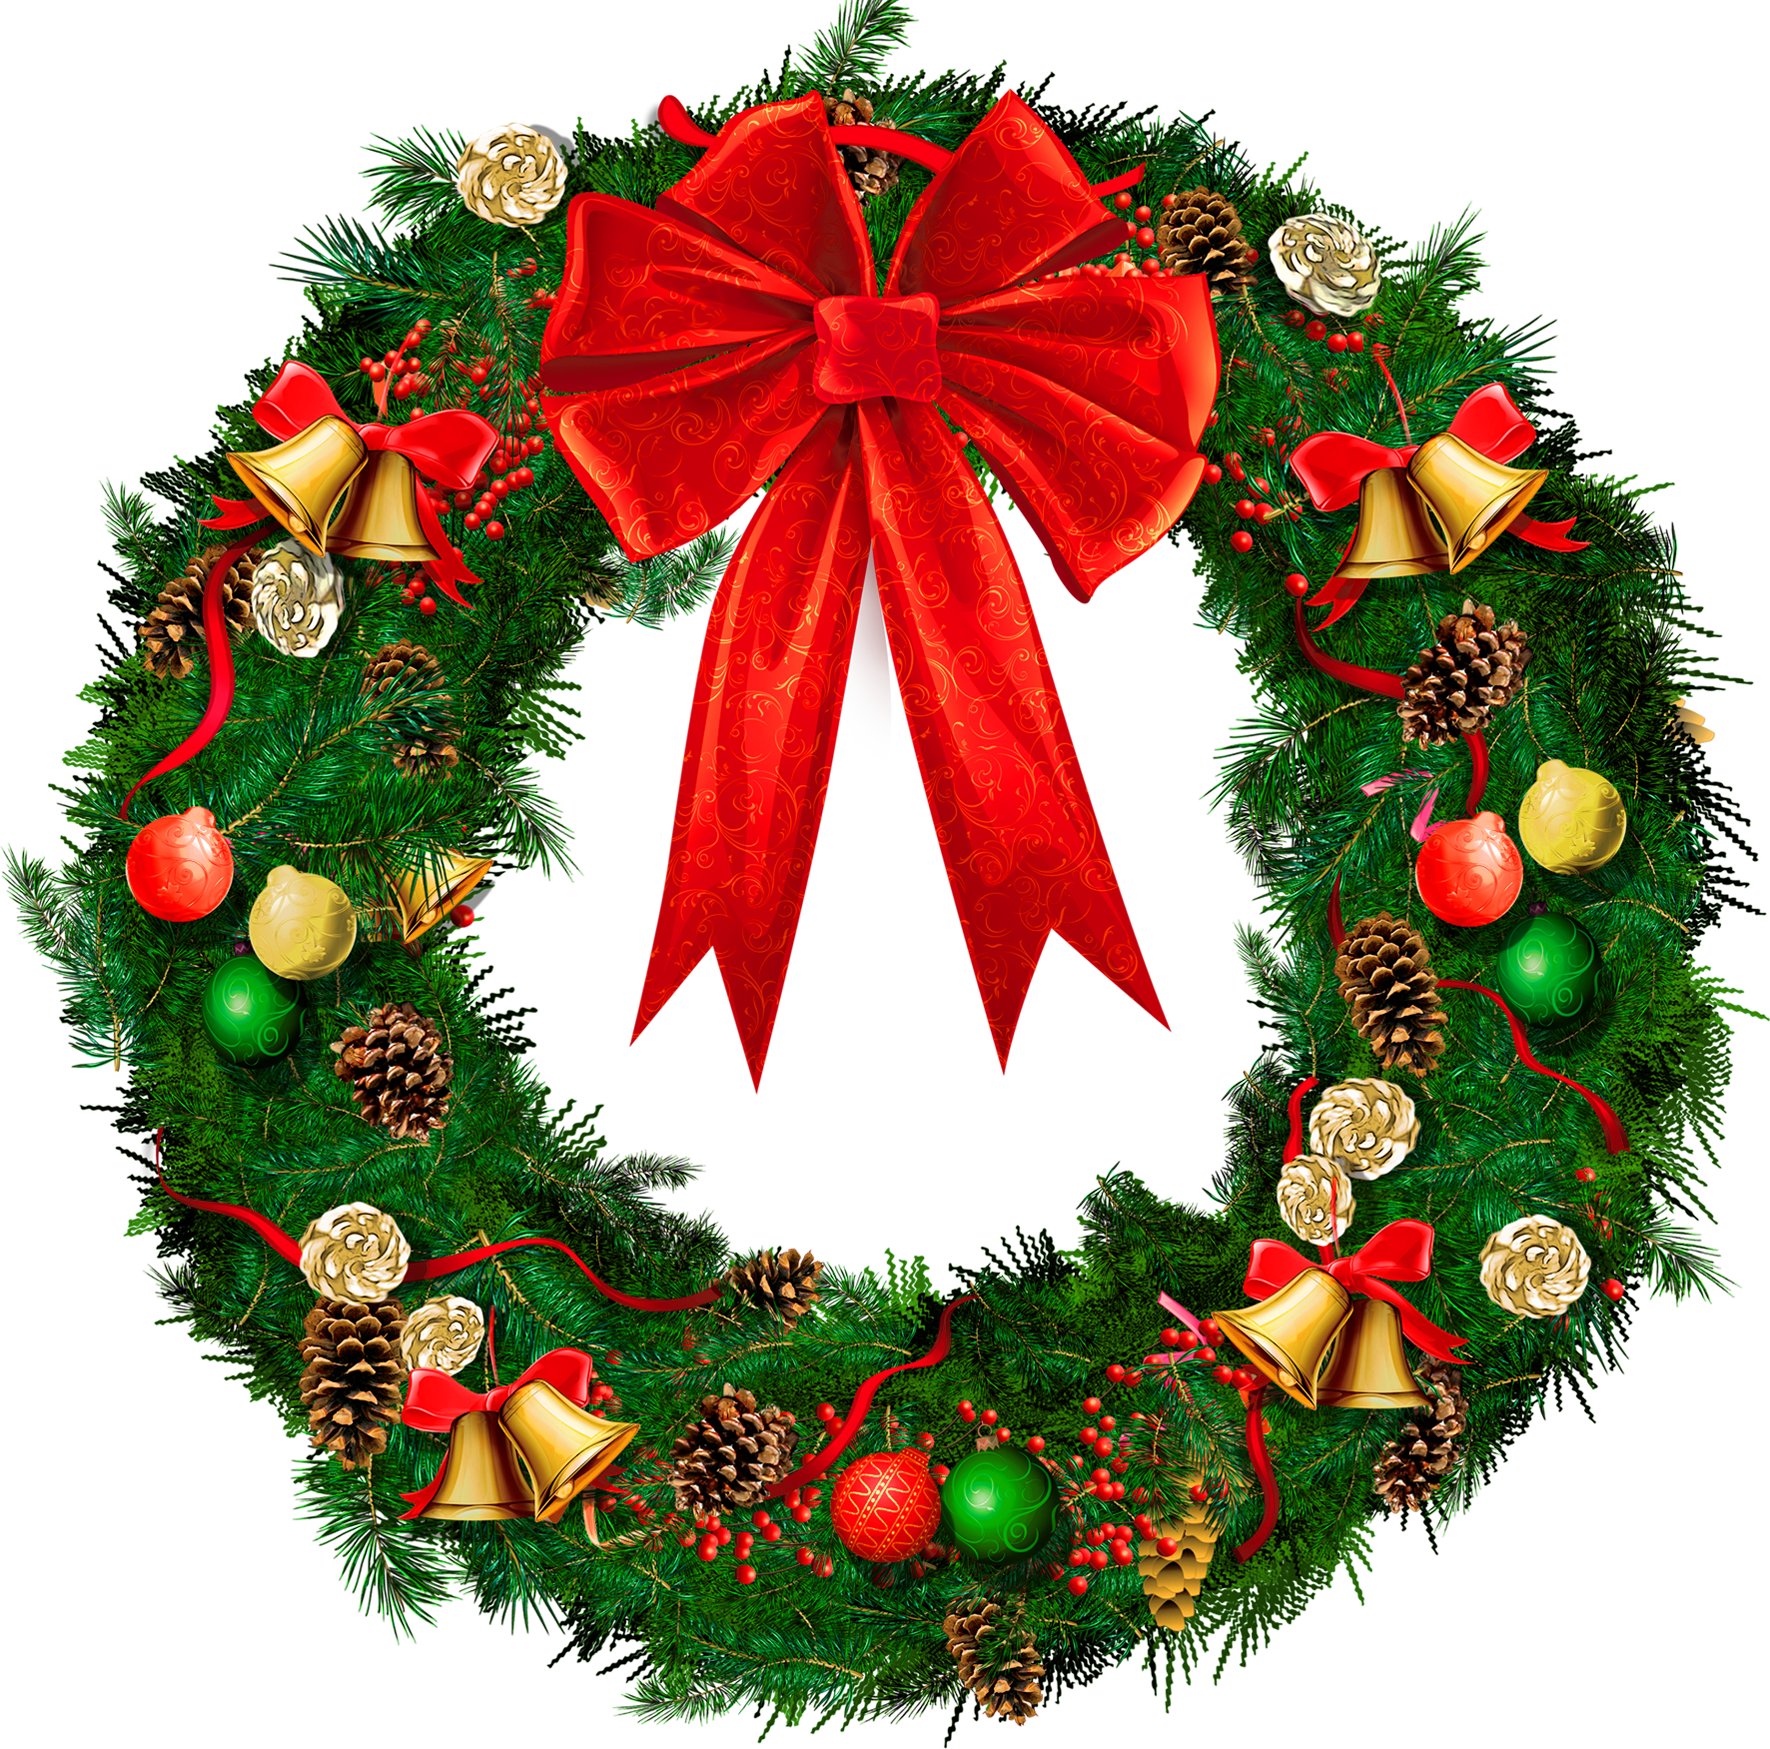 Christmas wreath red. Pin by bambosz on